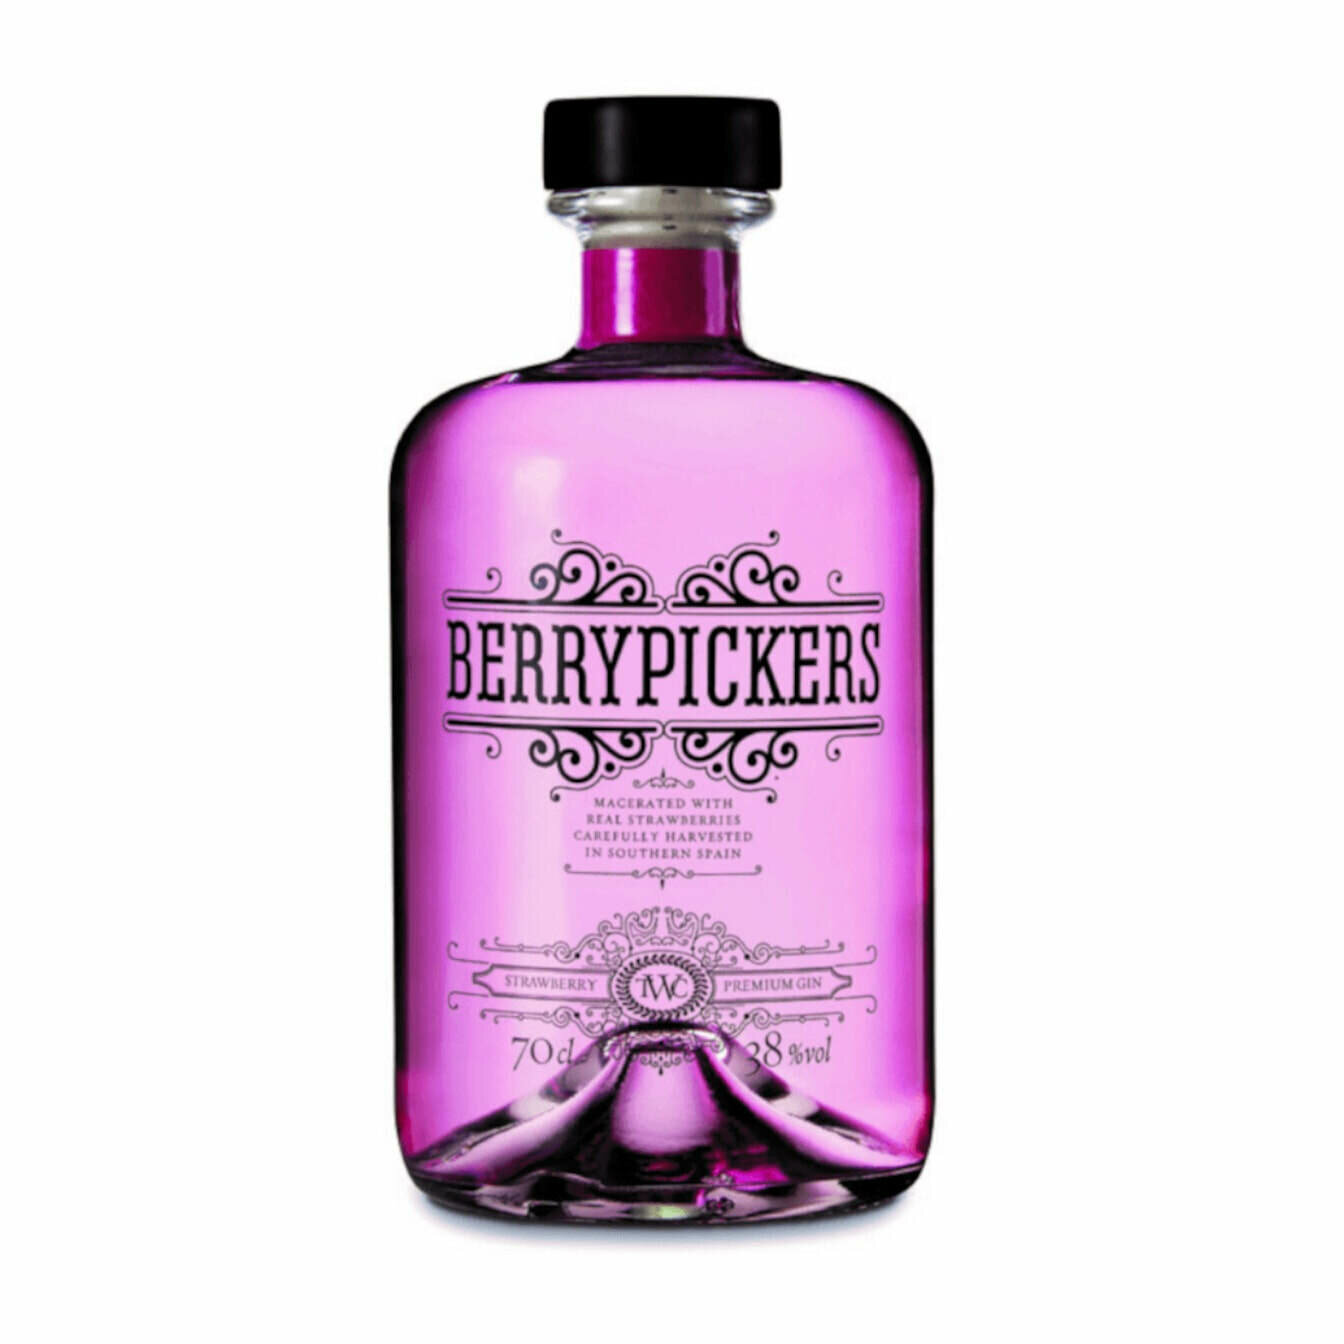 Berry Pickers Strawberry Gin